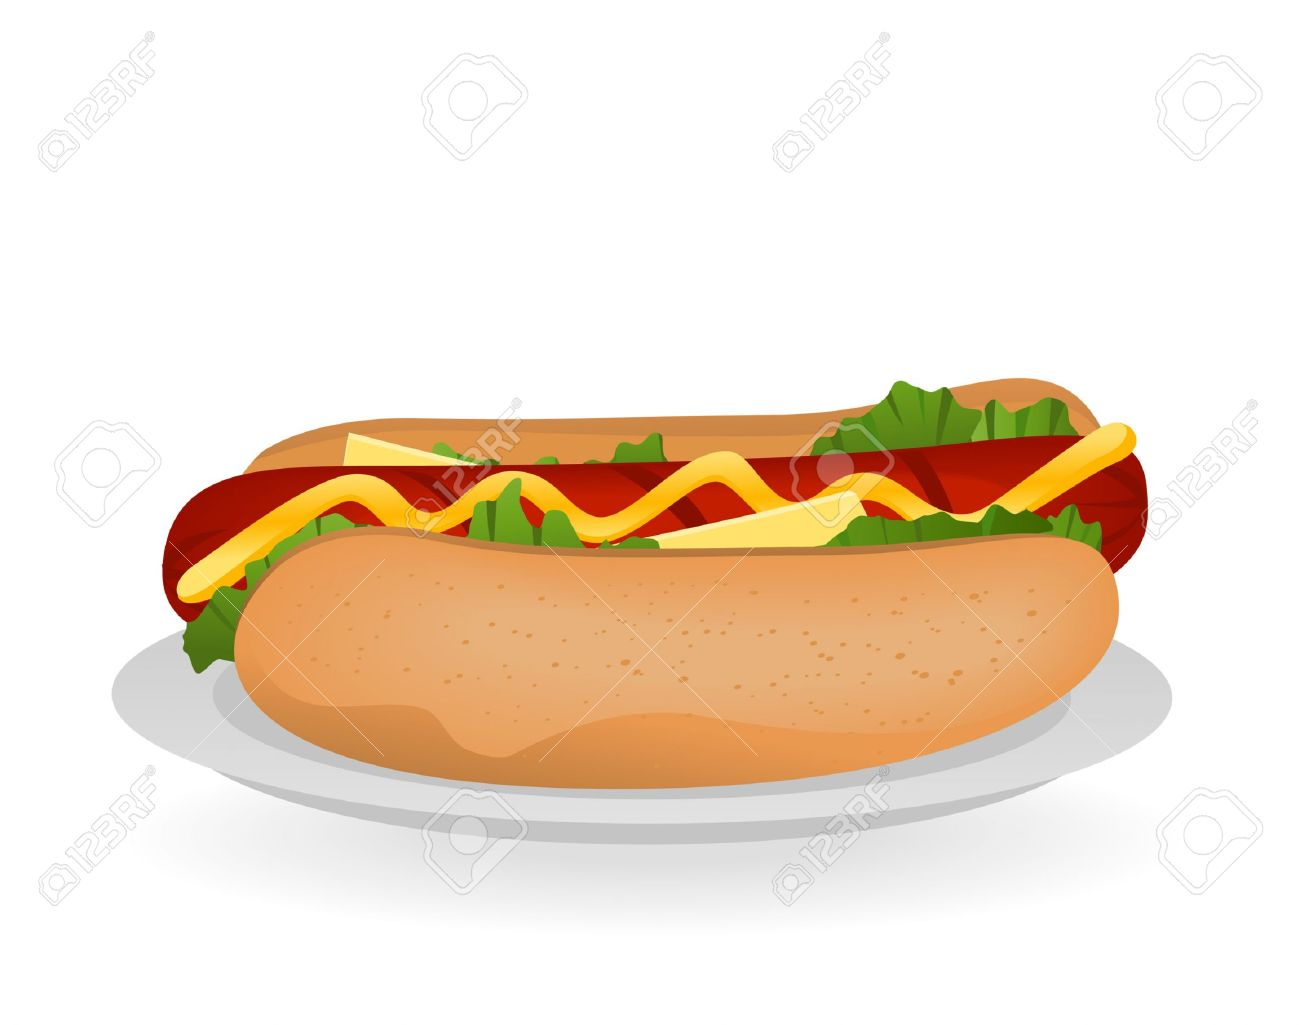 Hotdog Stock Vector Illustration And Royalty Free Hotdog Clipart